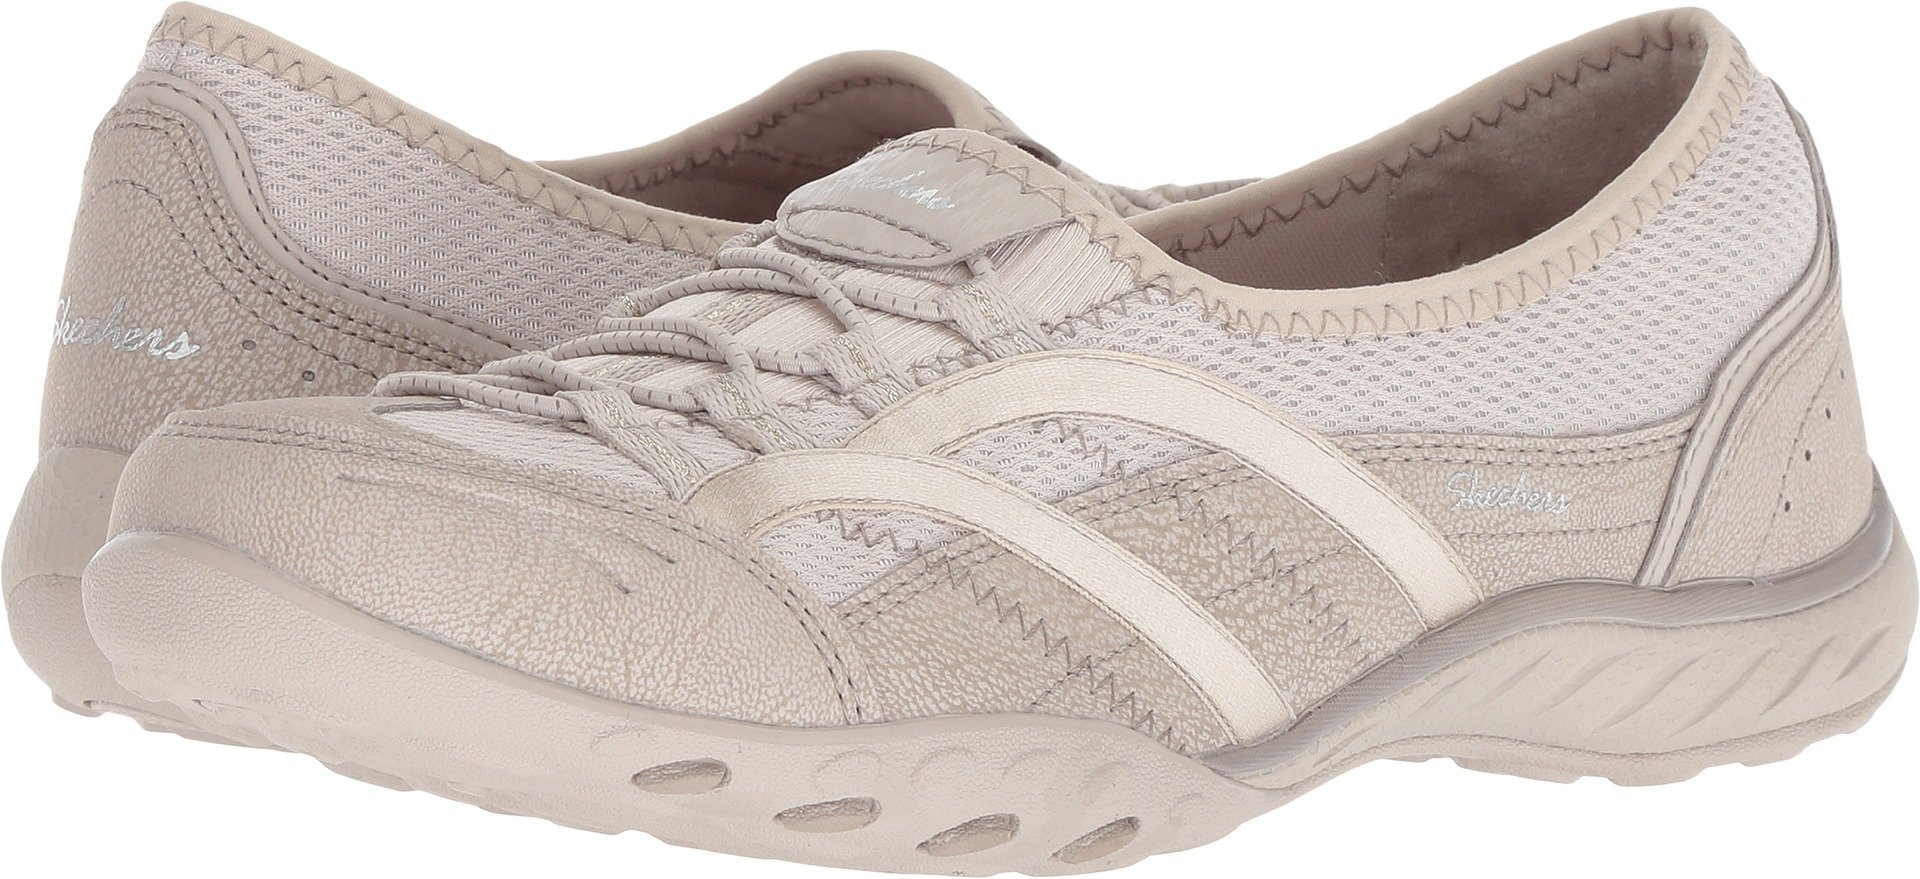 Skechers Relaxed Fit Breathe Easy Well Versed Womens Slip On Sneakers Natural 9.5 W